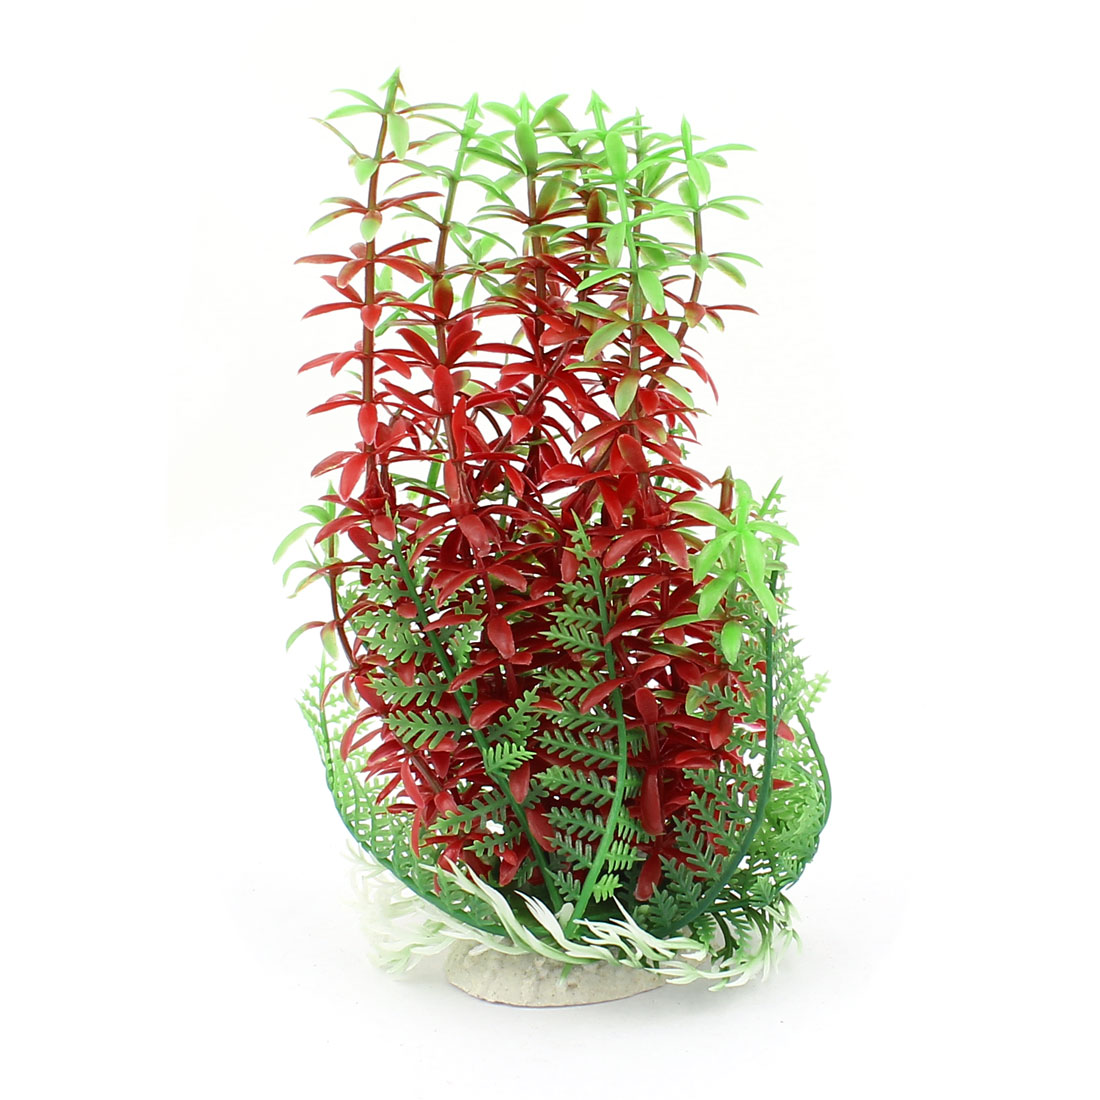 Plastic Underwater Aquatic Plant Fish Tank Aquarium Decoration